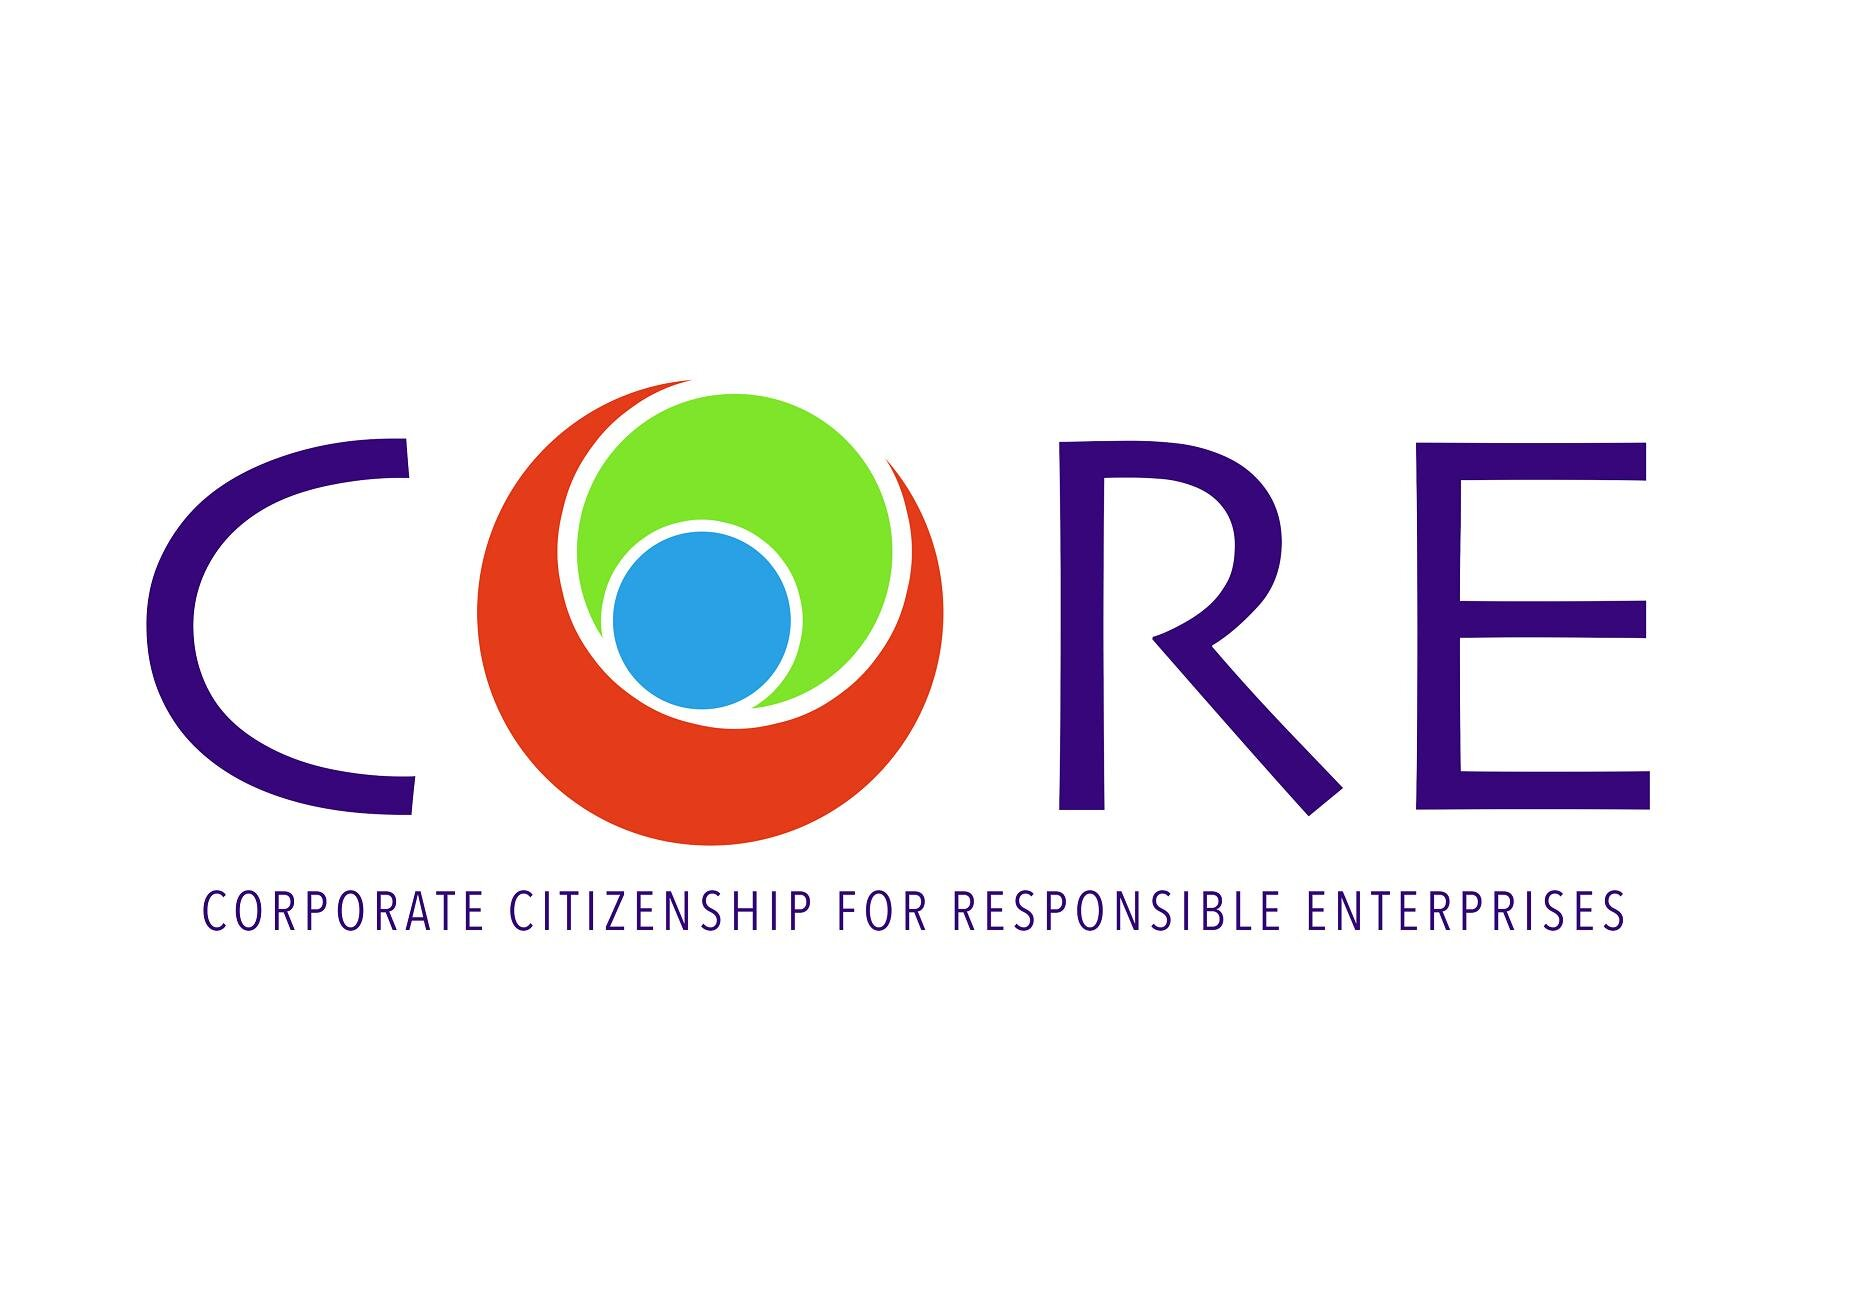 CORE - The CORE Platform is the National CSR Platform under the patronage of Her Excellency the President of Malta. Its board are all the business institutions in Malta and its objective is to encourage businesses to become good corporate citizens. CORE is an Educator and Enabler and is doing its utmost to encourage companies to use CSR as the tools to achieve the Sustainable Development Goals.